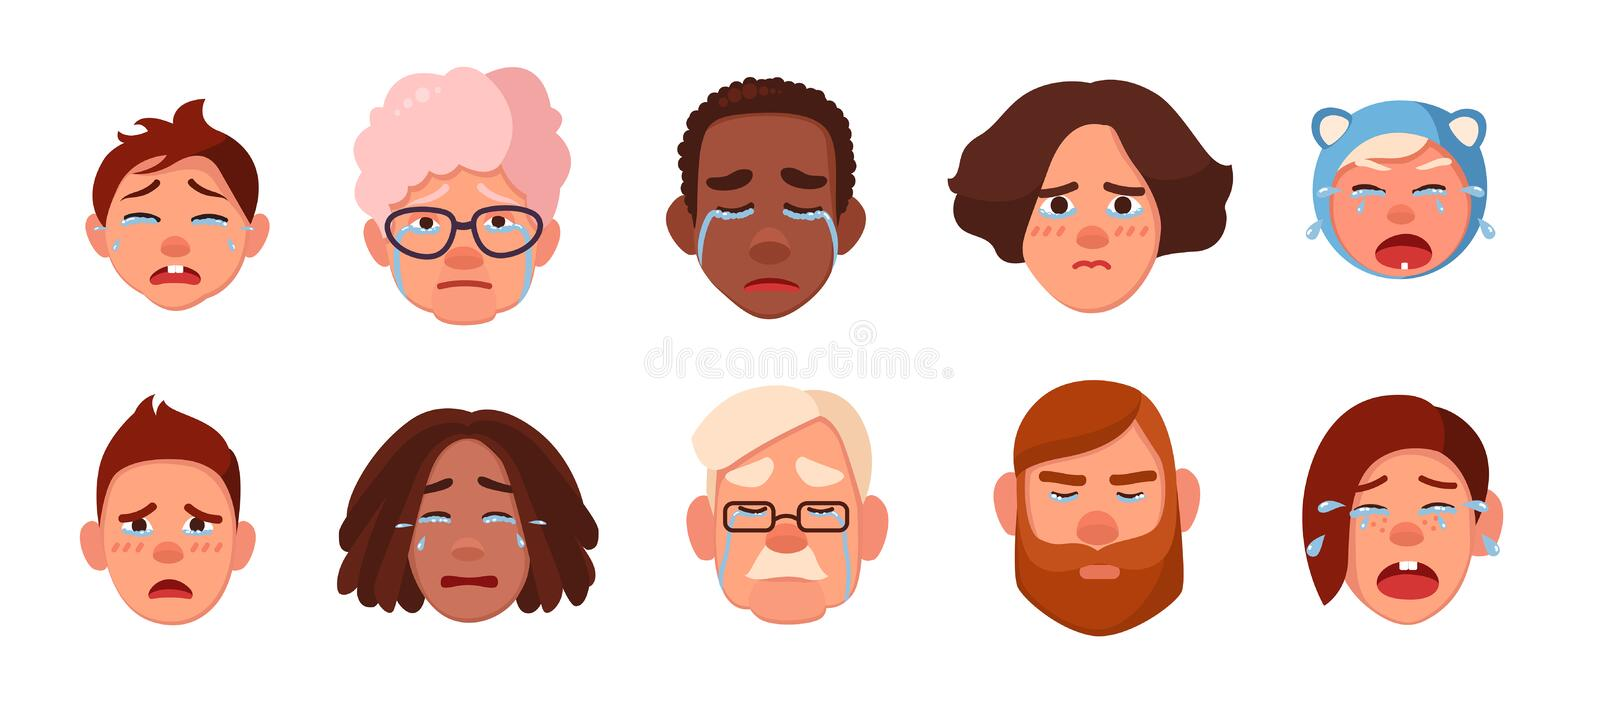 Set of faces crying person. Different sad people, children, young, adults, old collection. Colorful vector illustration stock illustration